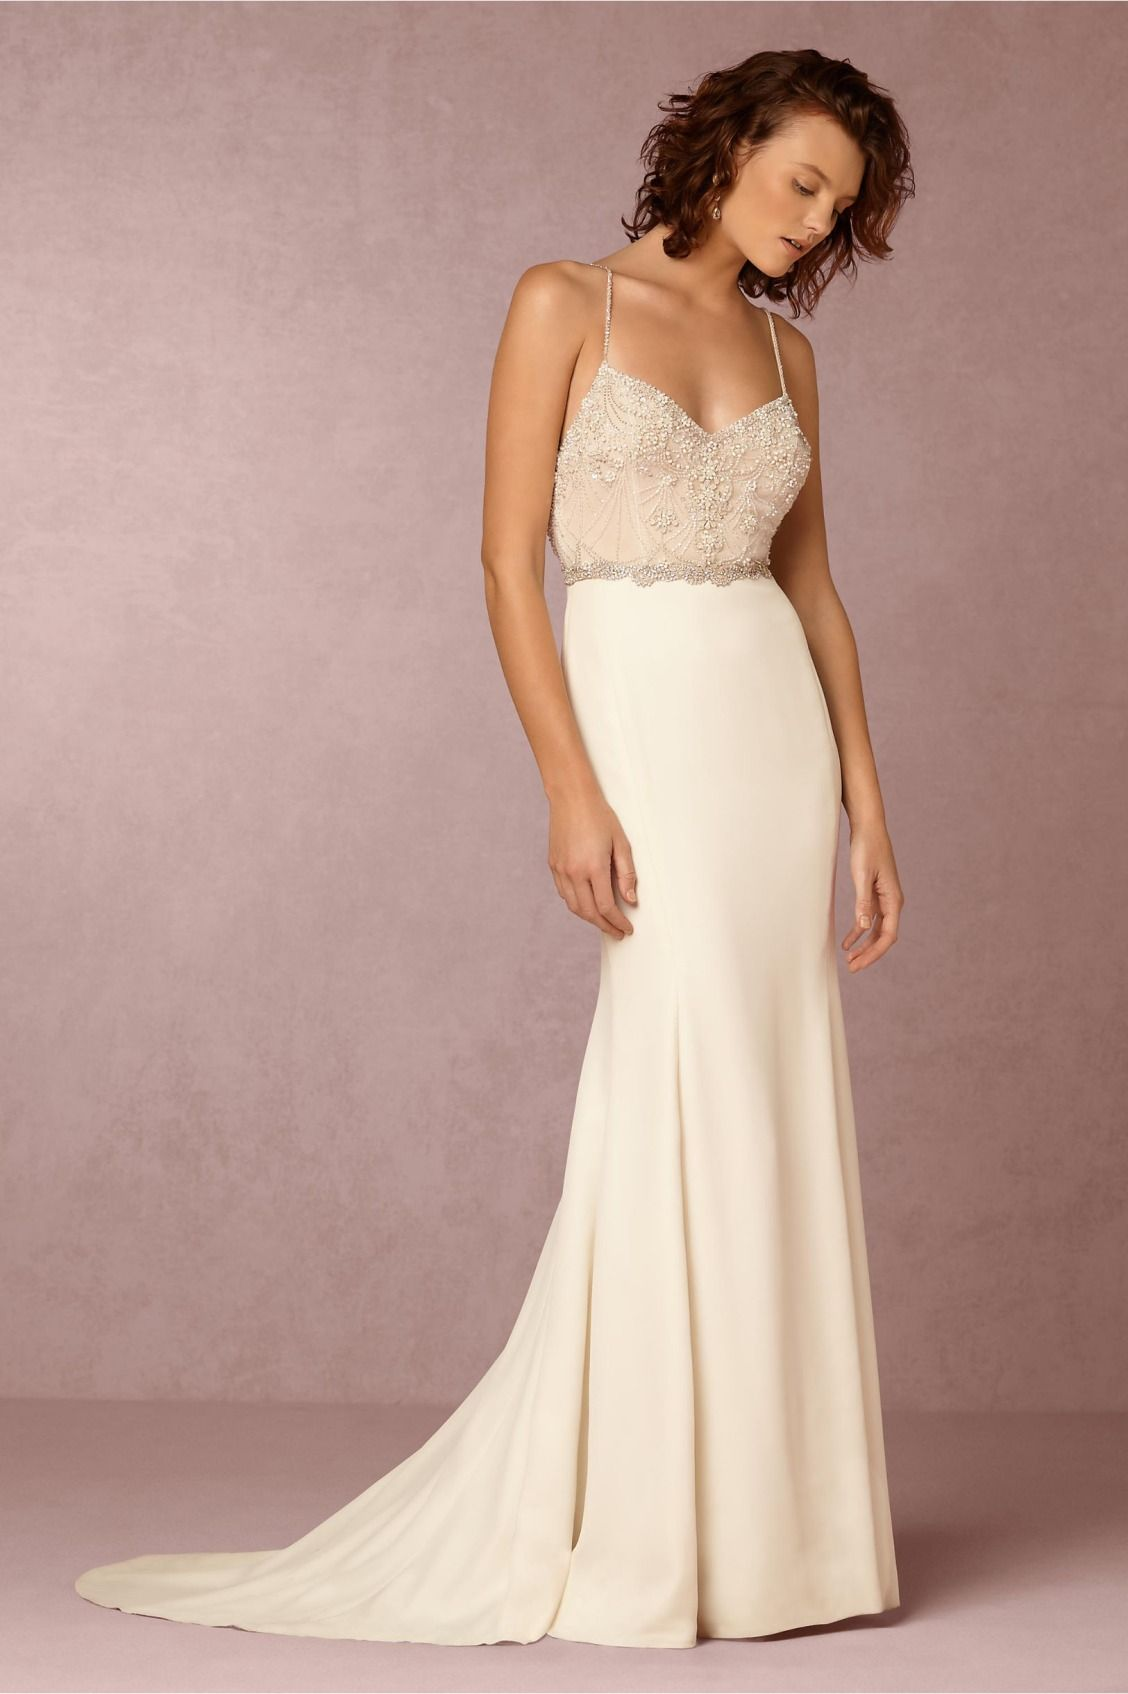 After wedding dress ideas  happily ever after  Irene Gown from BHLDN  Wedding  Pinterest